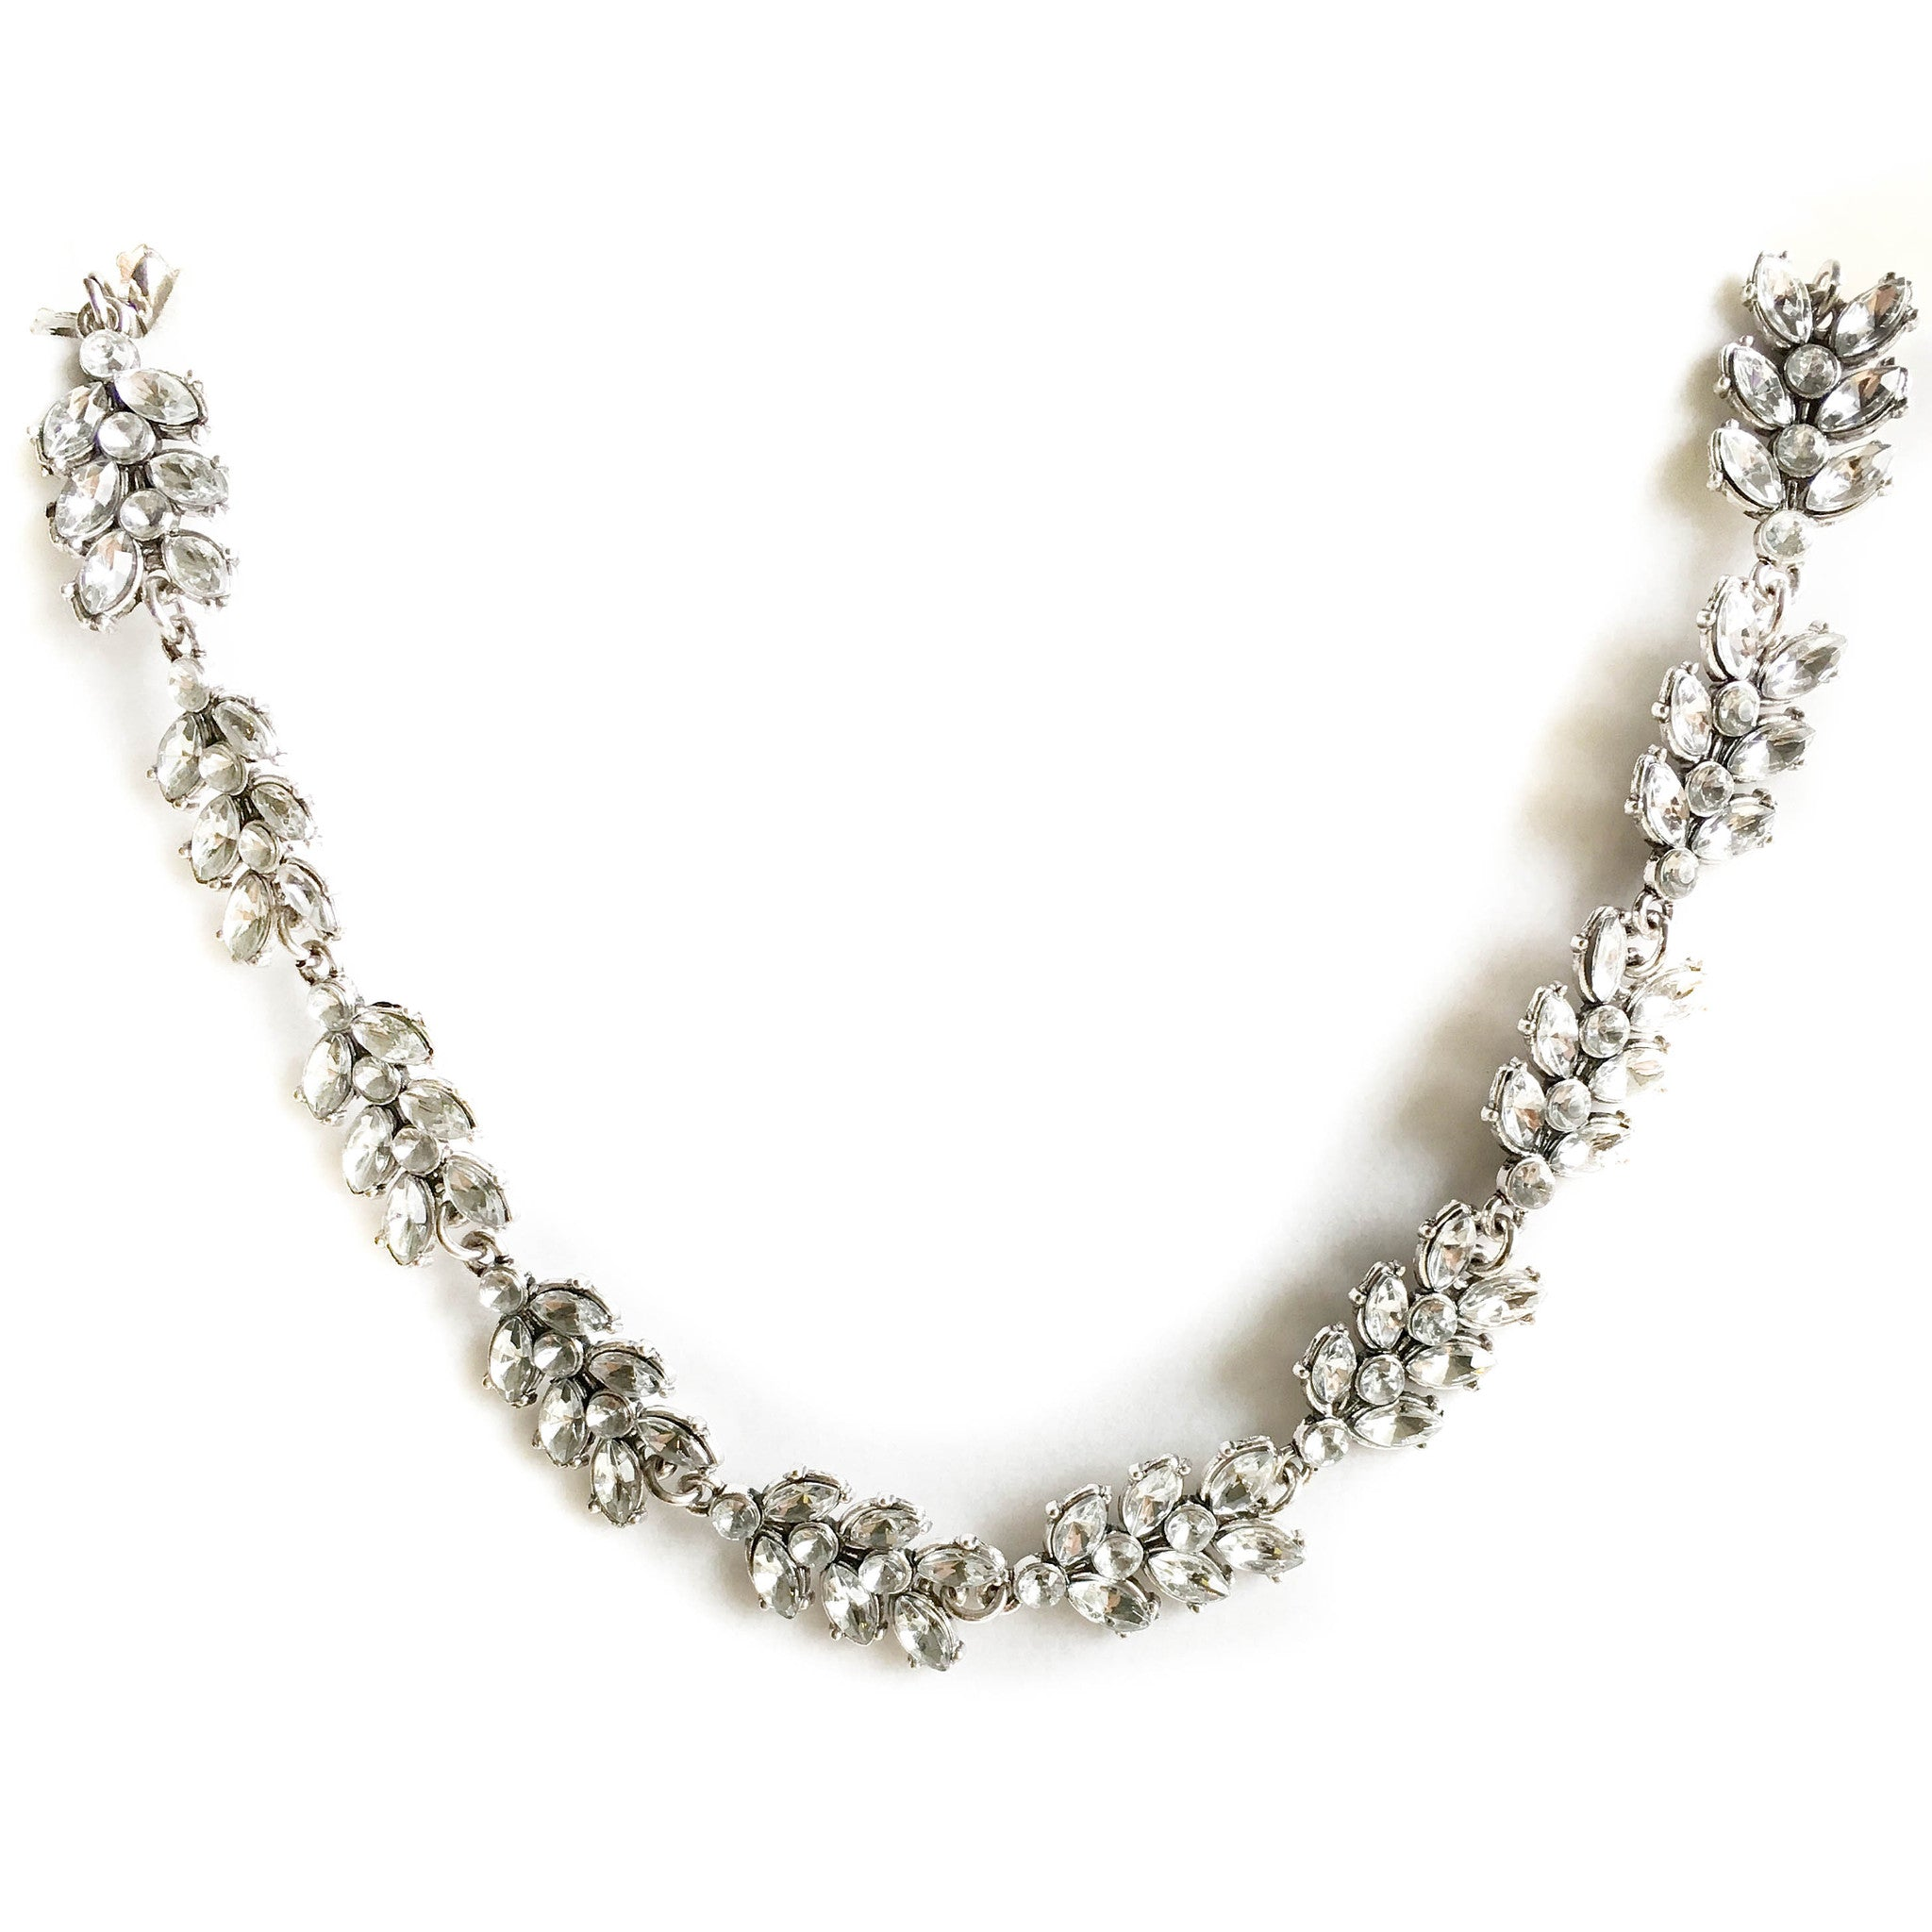 Aurore Crystal Collar Necklace - Micha Store